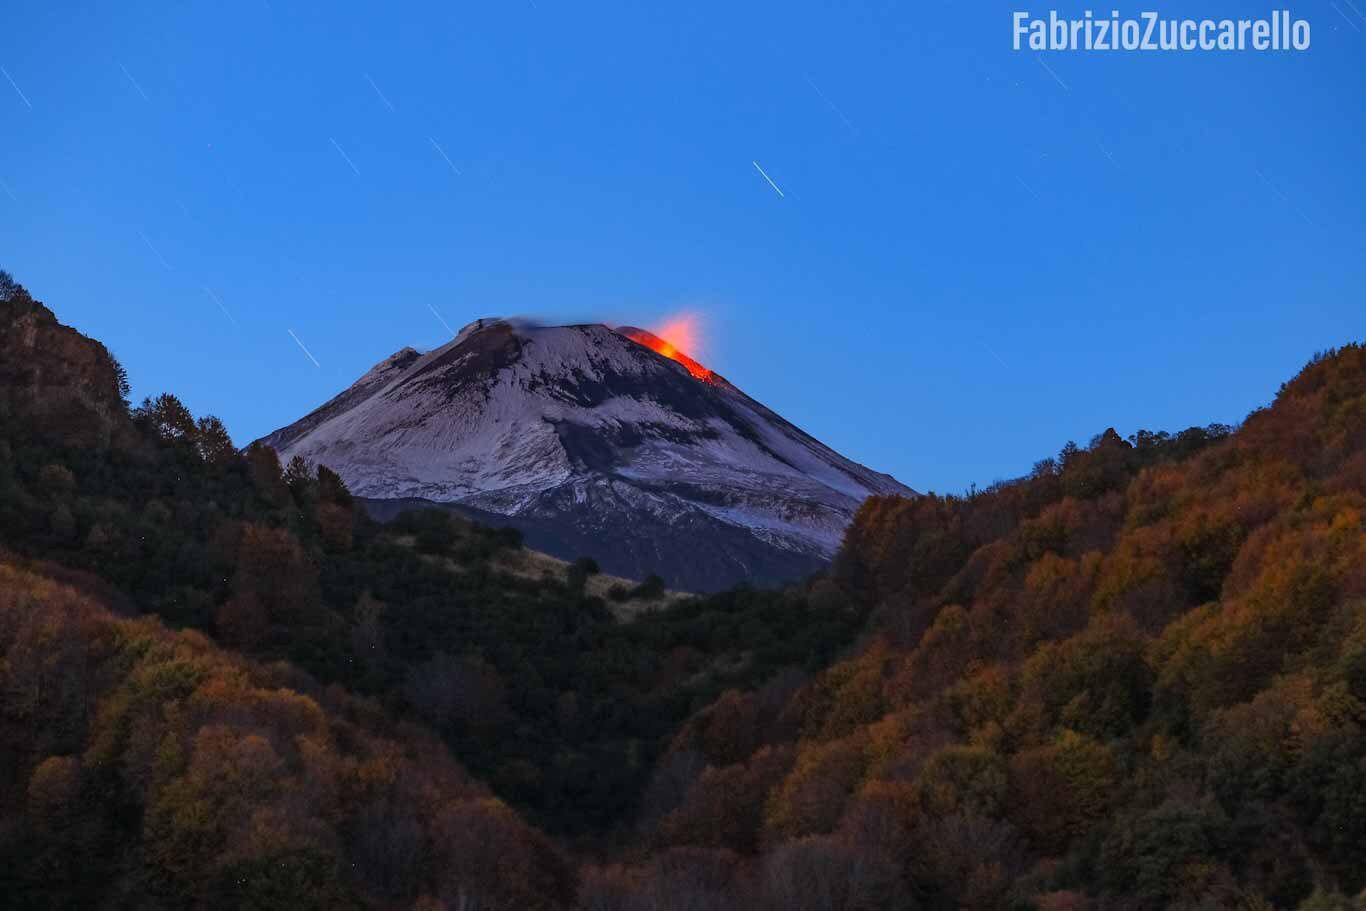 Etna - on the evening of November 4th, Strombolian activity at the NSEC - photo Fabricio Zuccarello / EtNative / Twitter